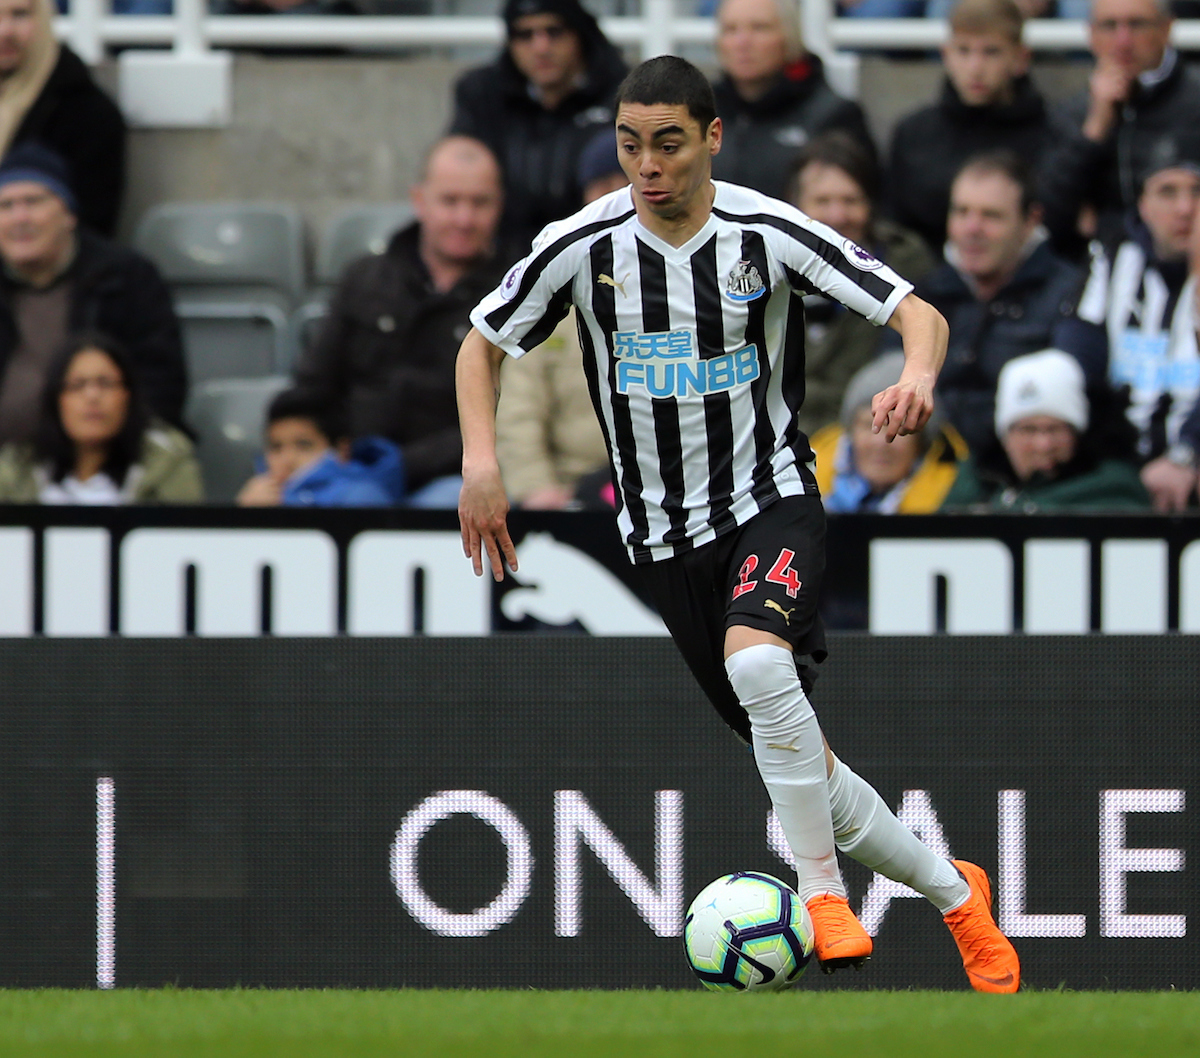 Miguel Almiron of Newcastle United during the Premier League match at St. James's Park, Newcastle Picture by Simon Moore/Focus Images Ltd 07807 671782 06/04/2019